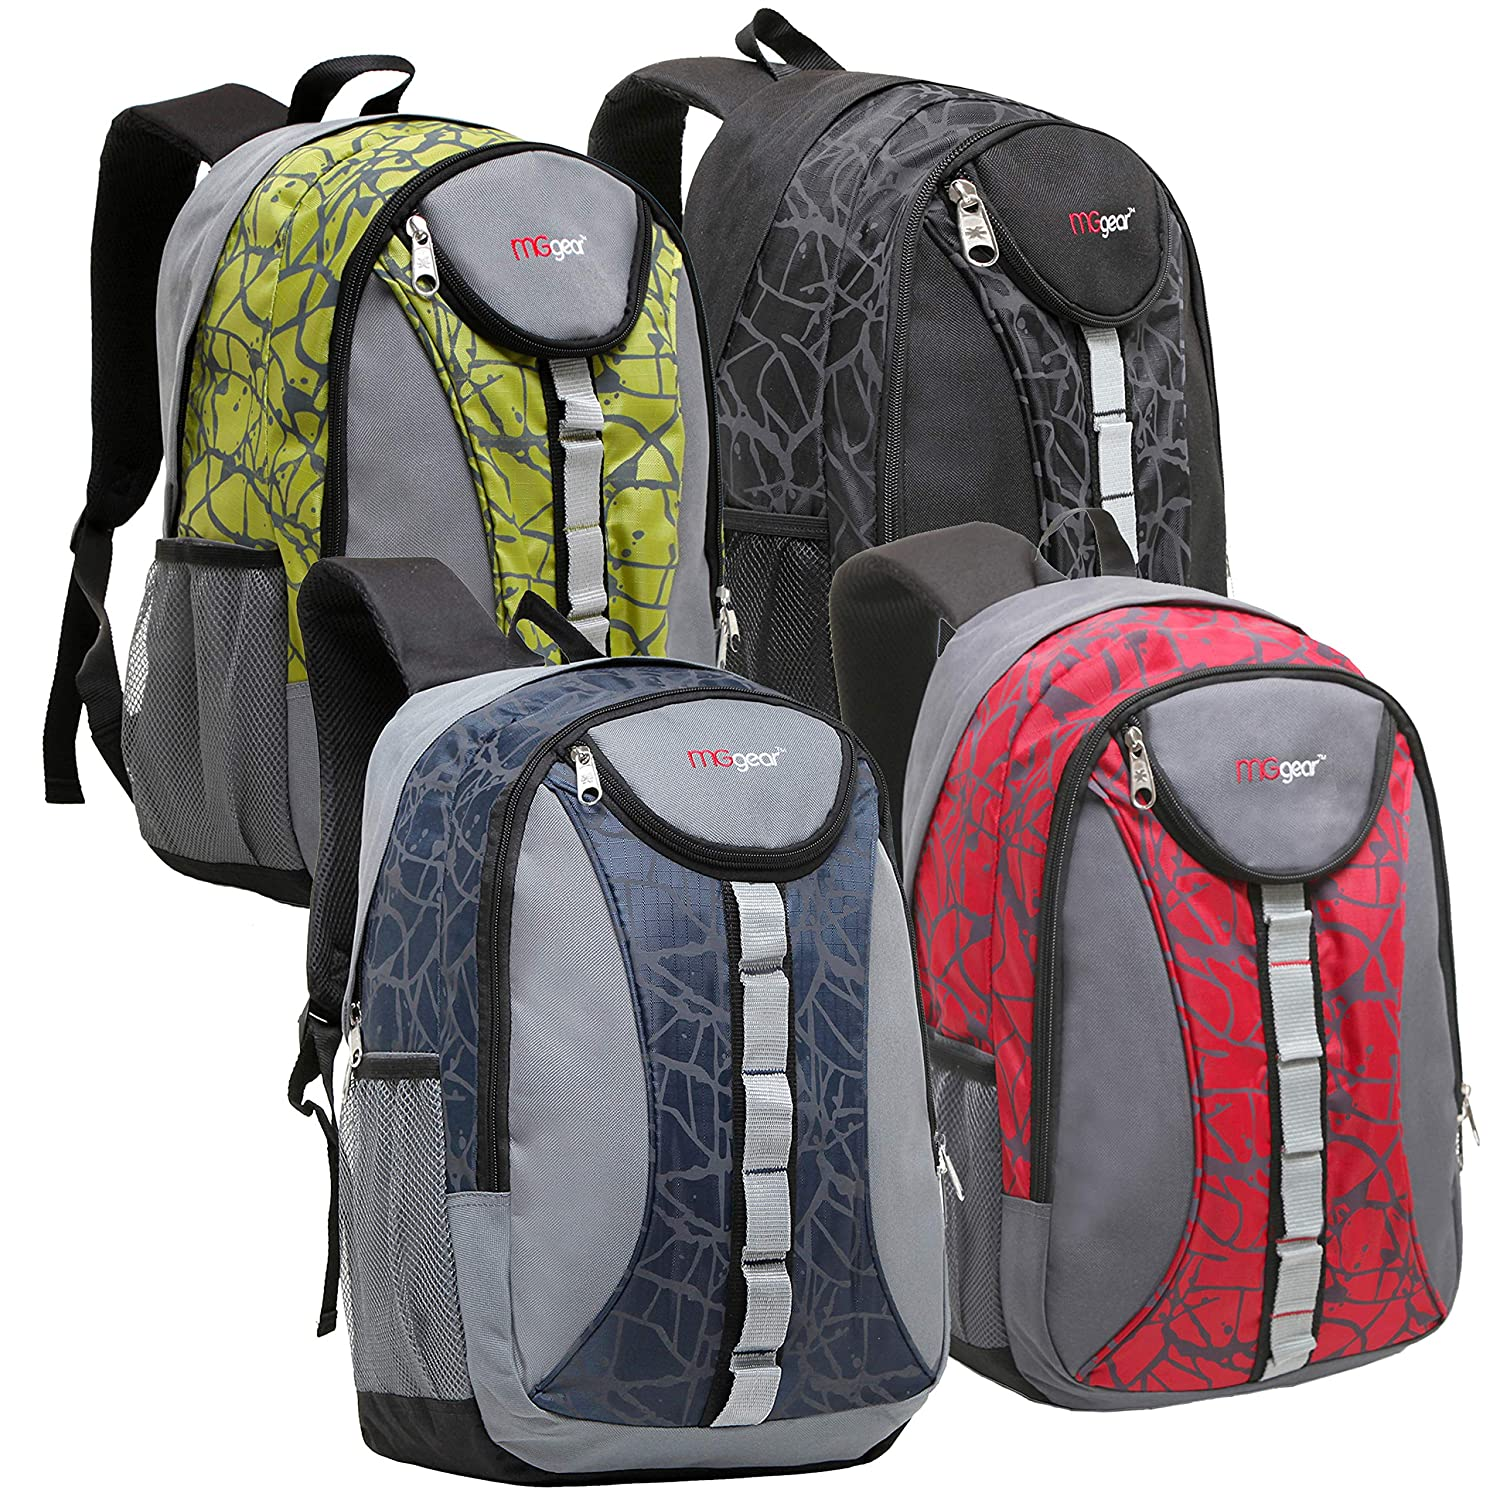 e46c41fac41 Amazon.com | Wholesale 18 Inch Heavy Duty Student School Backpack ...